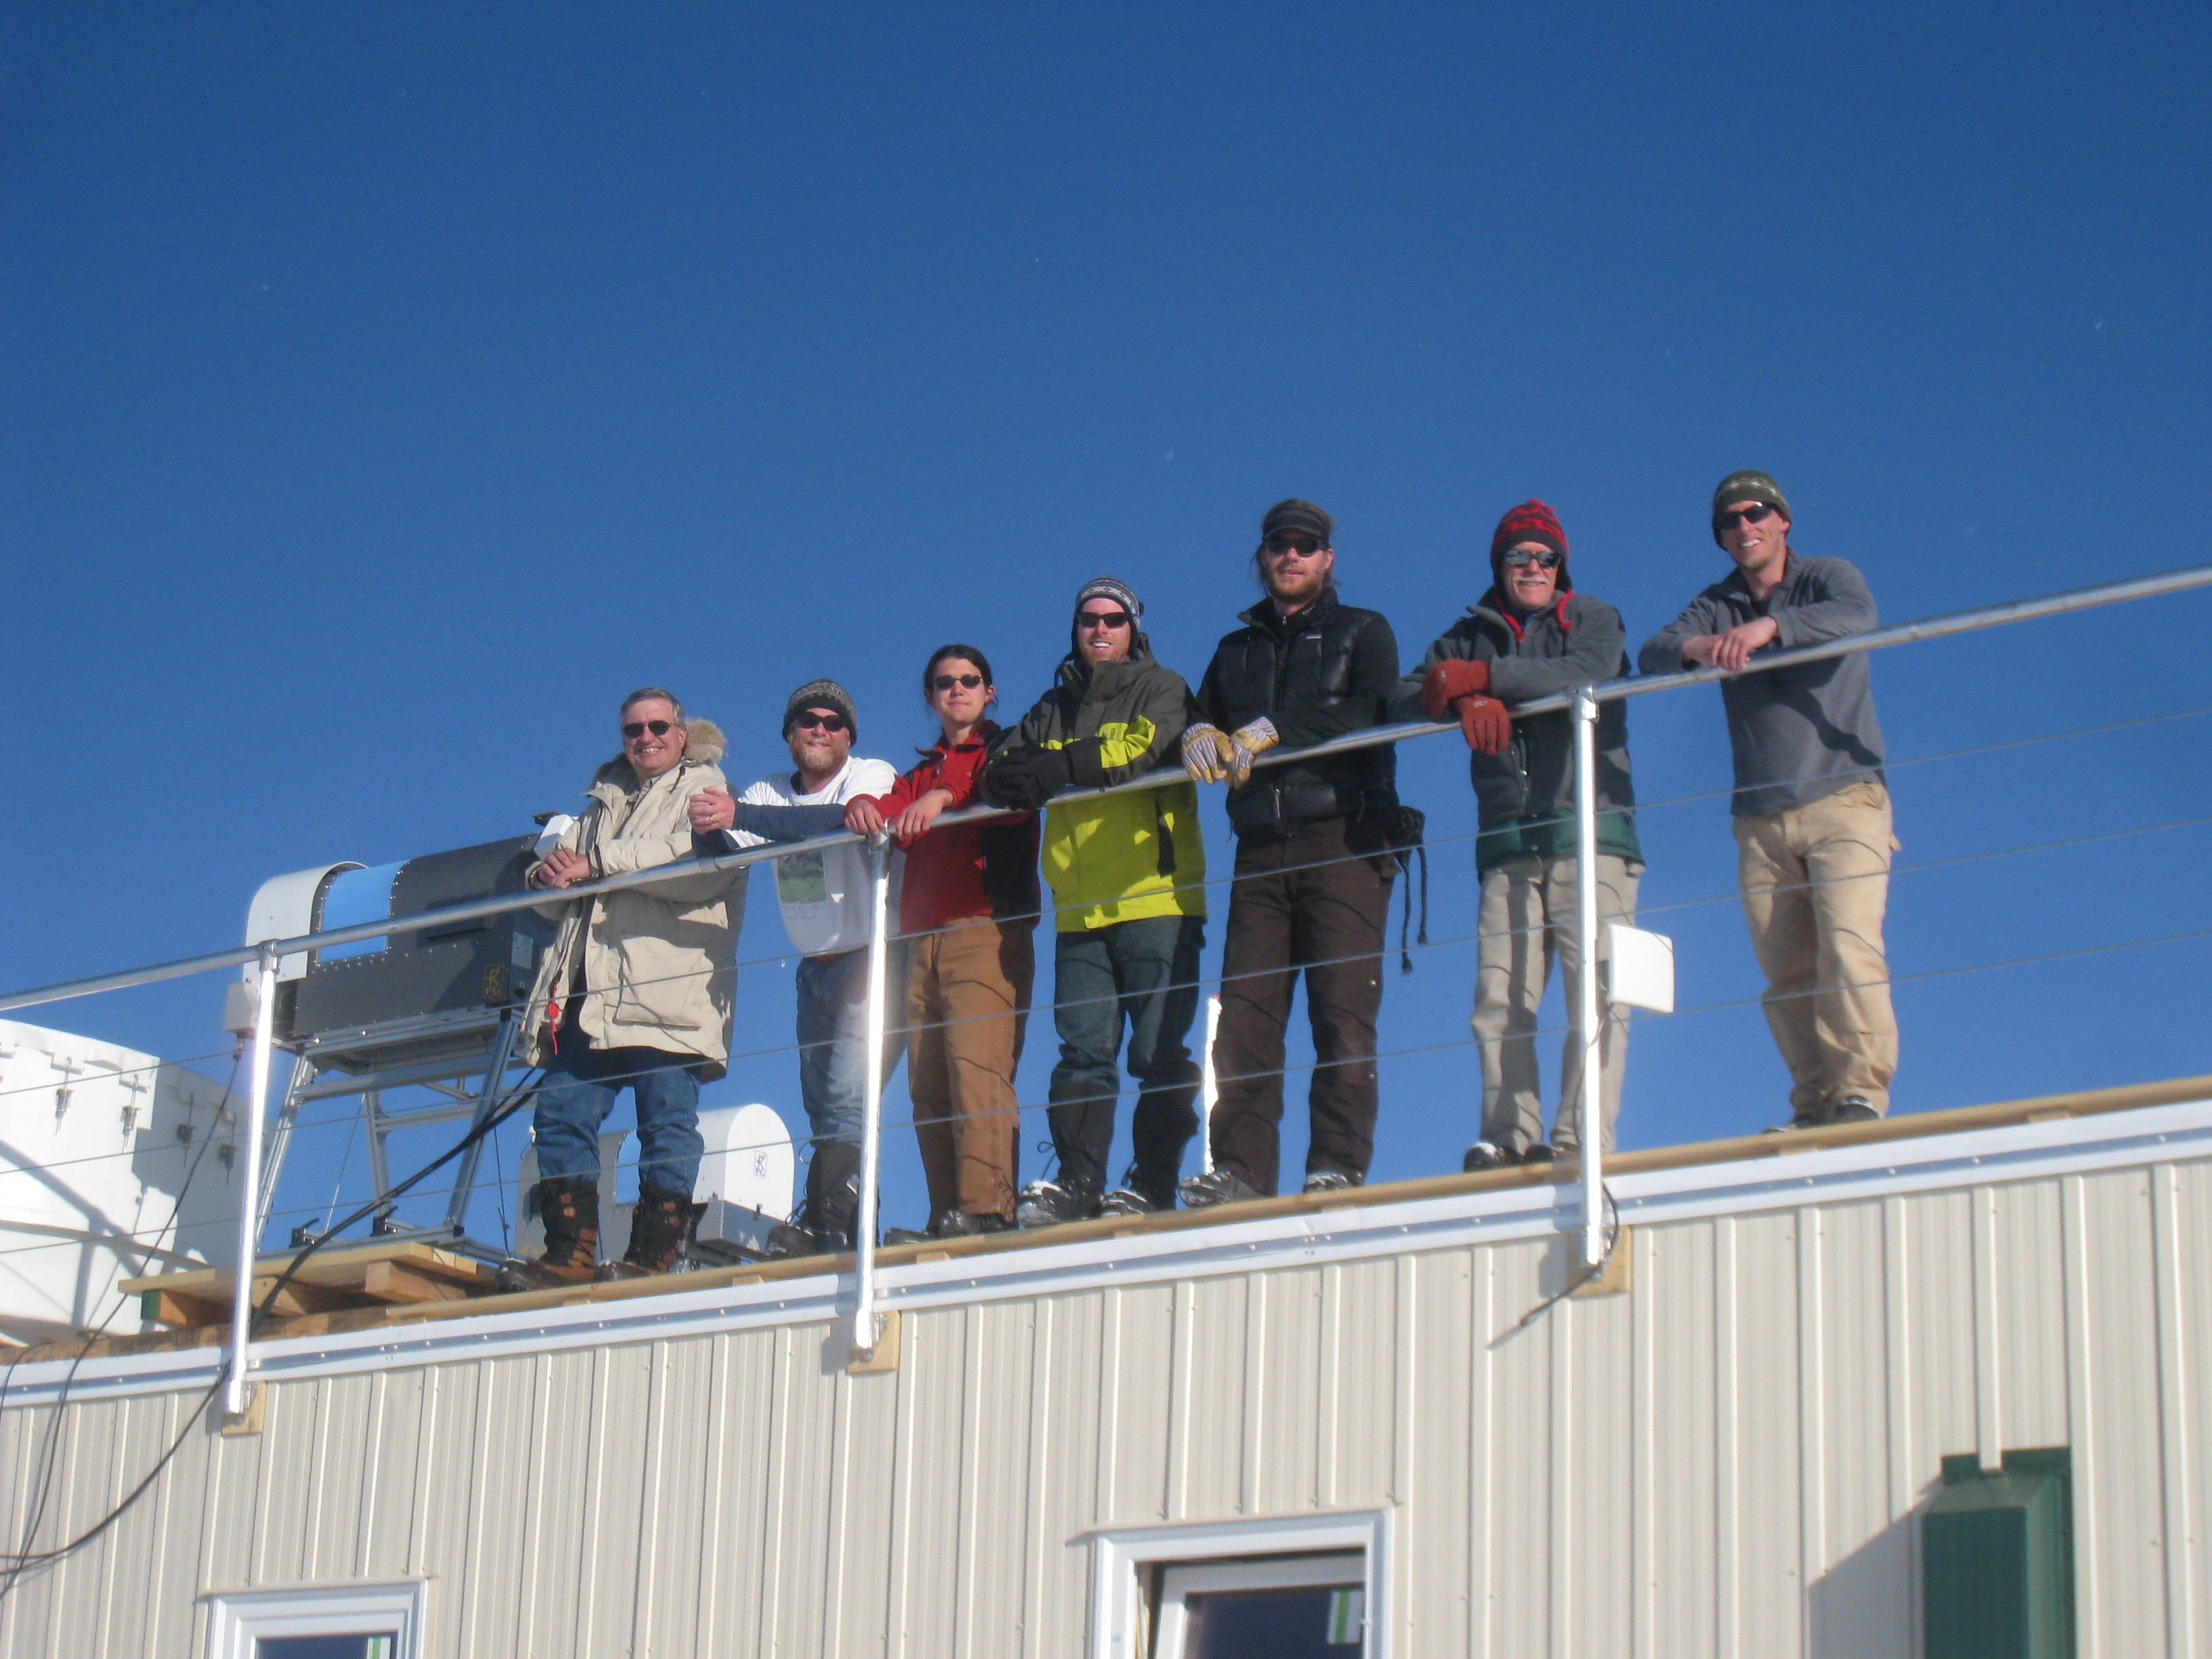 Members of the ICECAPS project team at the station in Summit, Greenland (L-R: Duane Hazen, Michael O'Neill, Ryan Neely, Erik Olson, Matthew Shupe, Brad Halter, and Christopher Cox). Picture Courtesy: Matthew Shupe